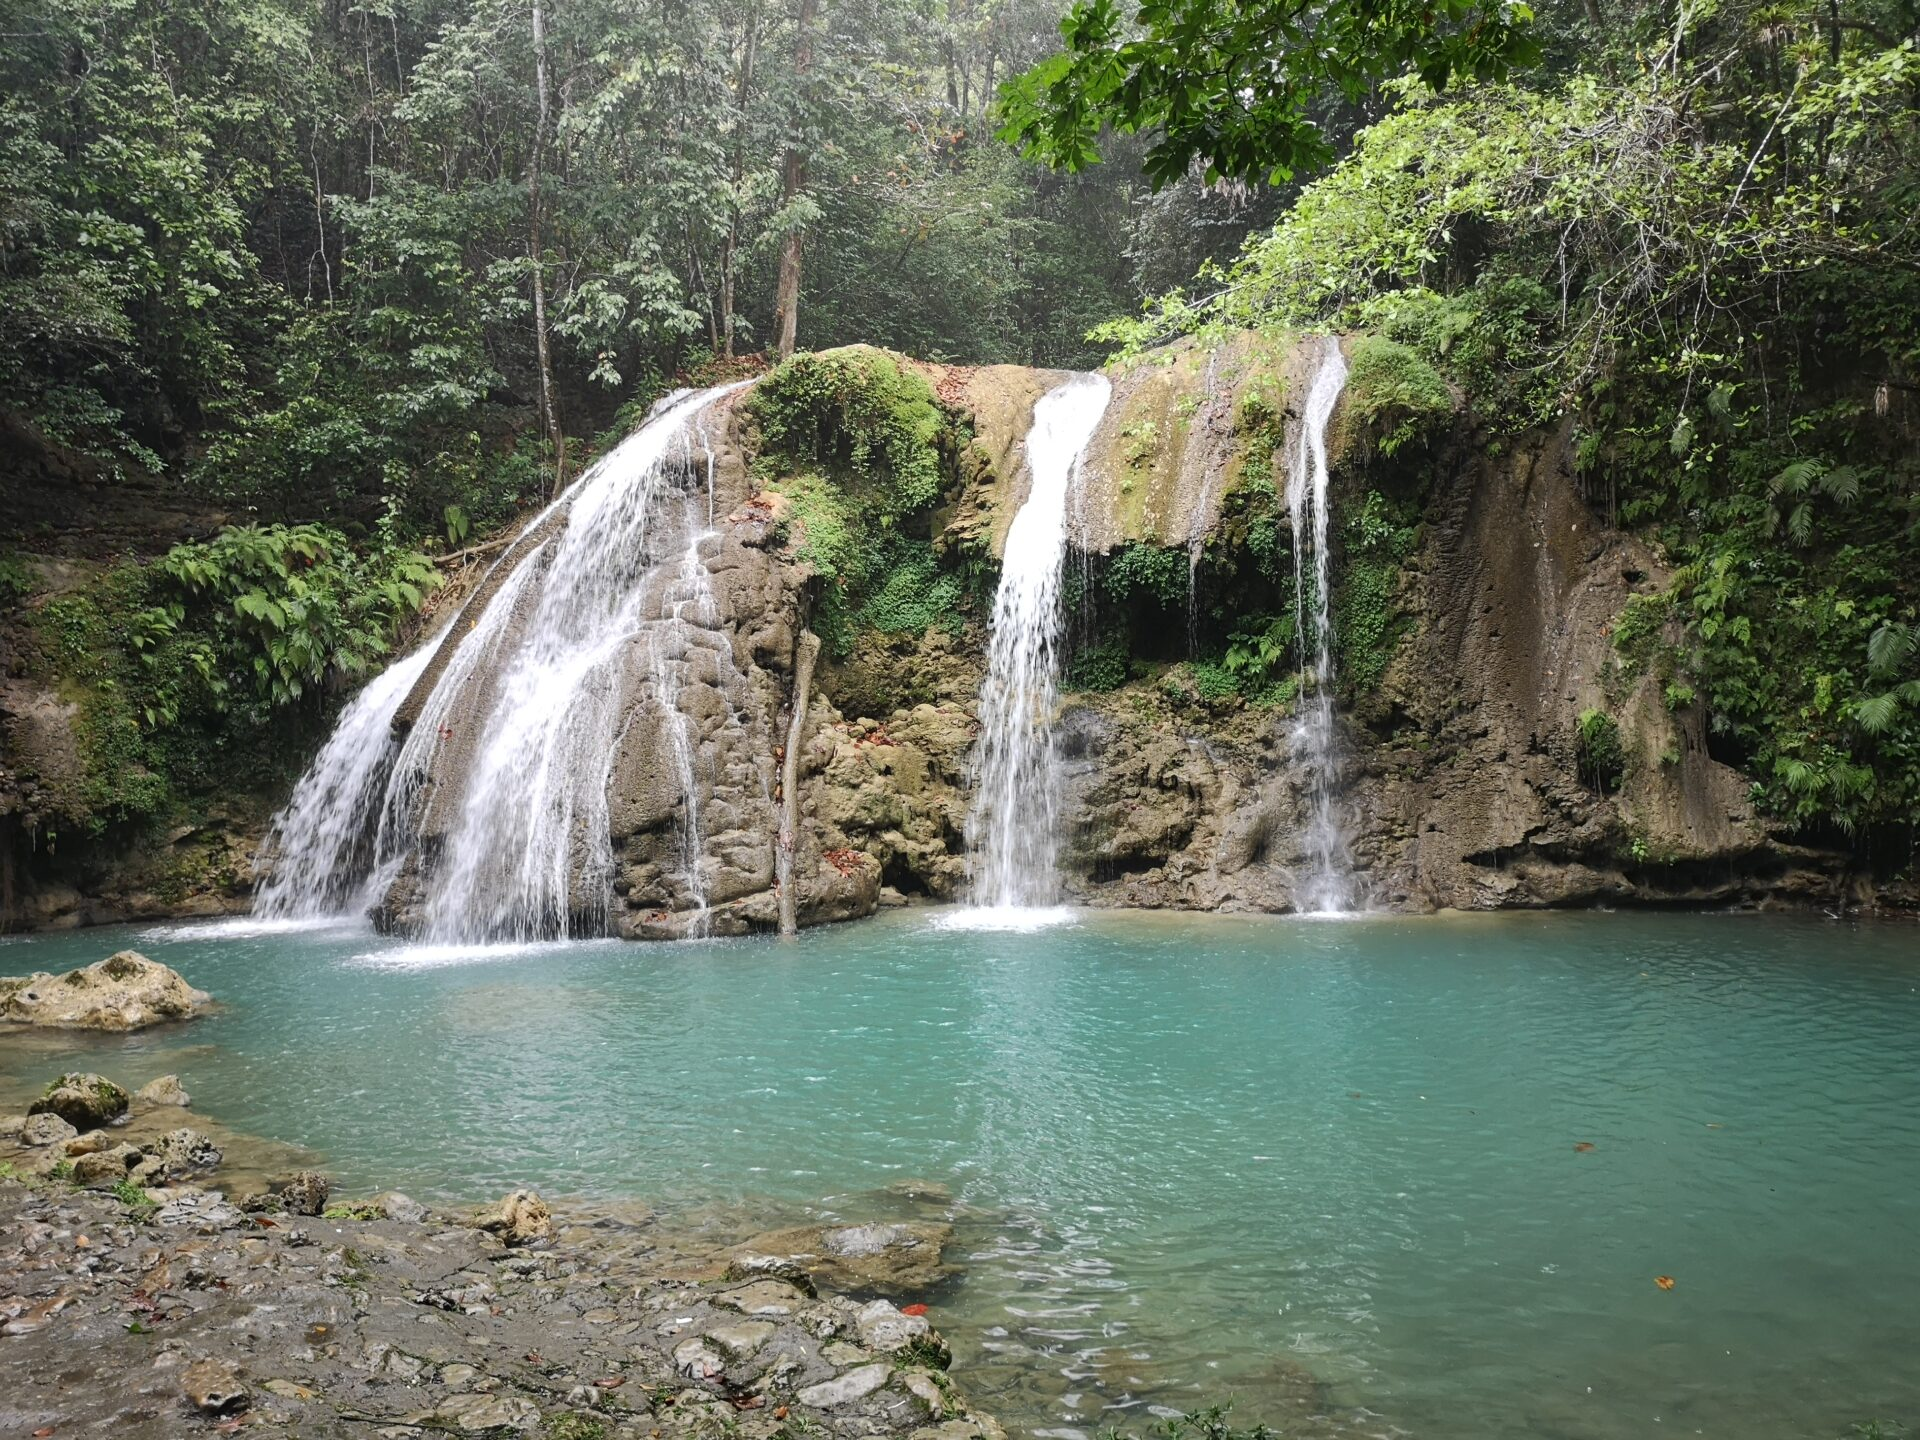 Waterfall in the Dominican Republic